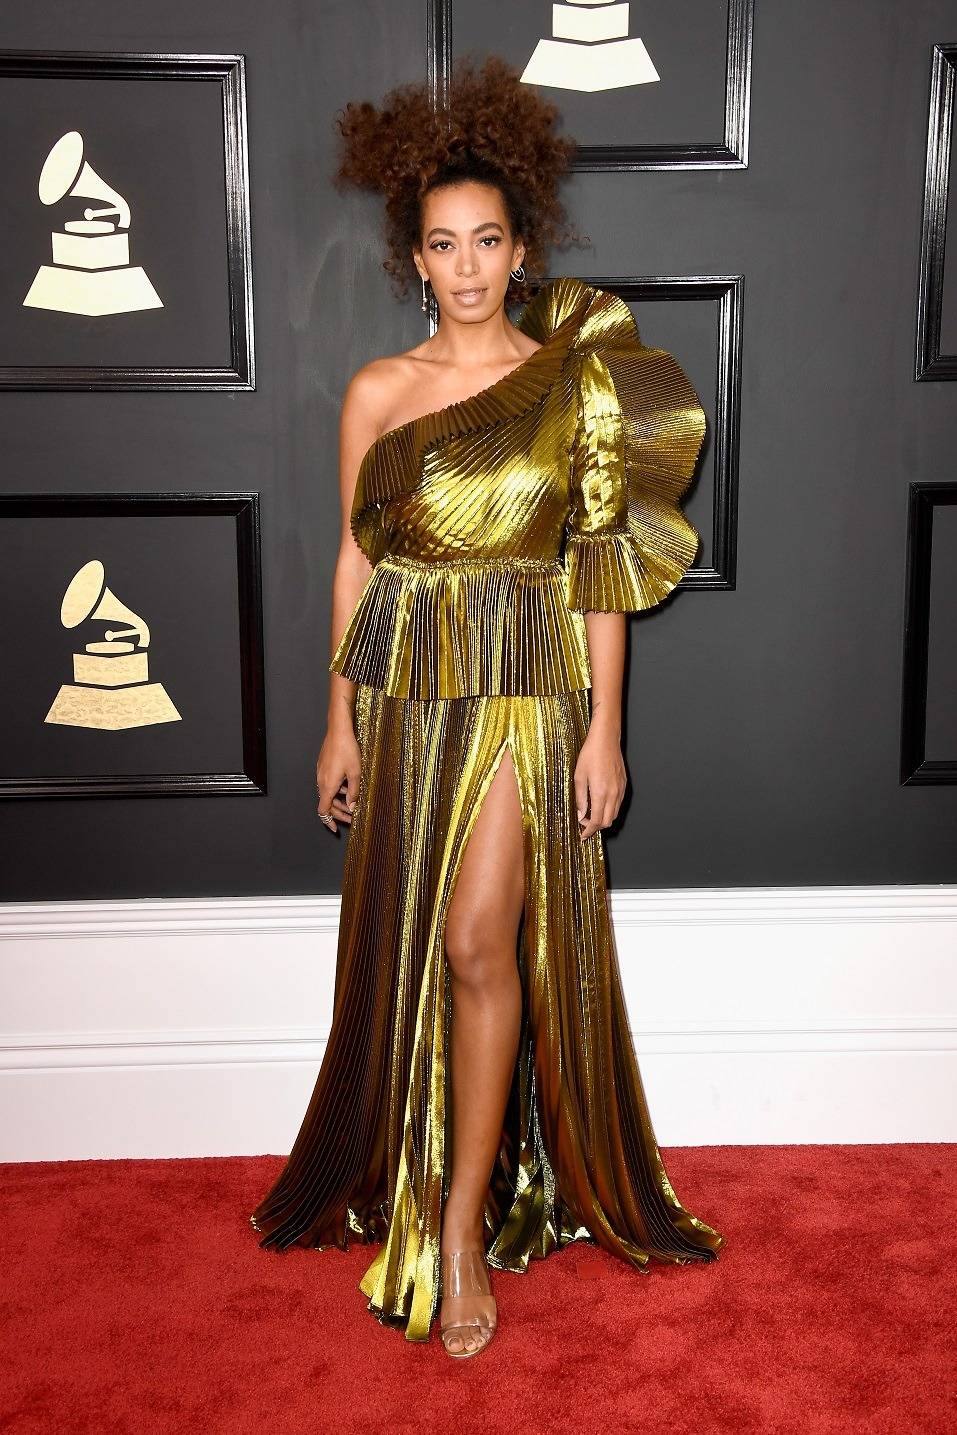 Singer Solange Knowles attends The 59th GRAMMY Awards